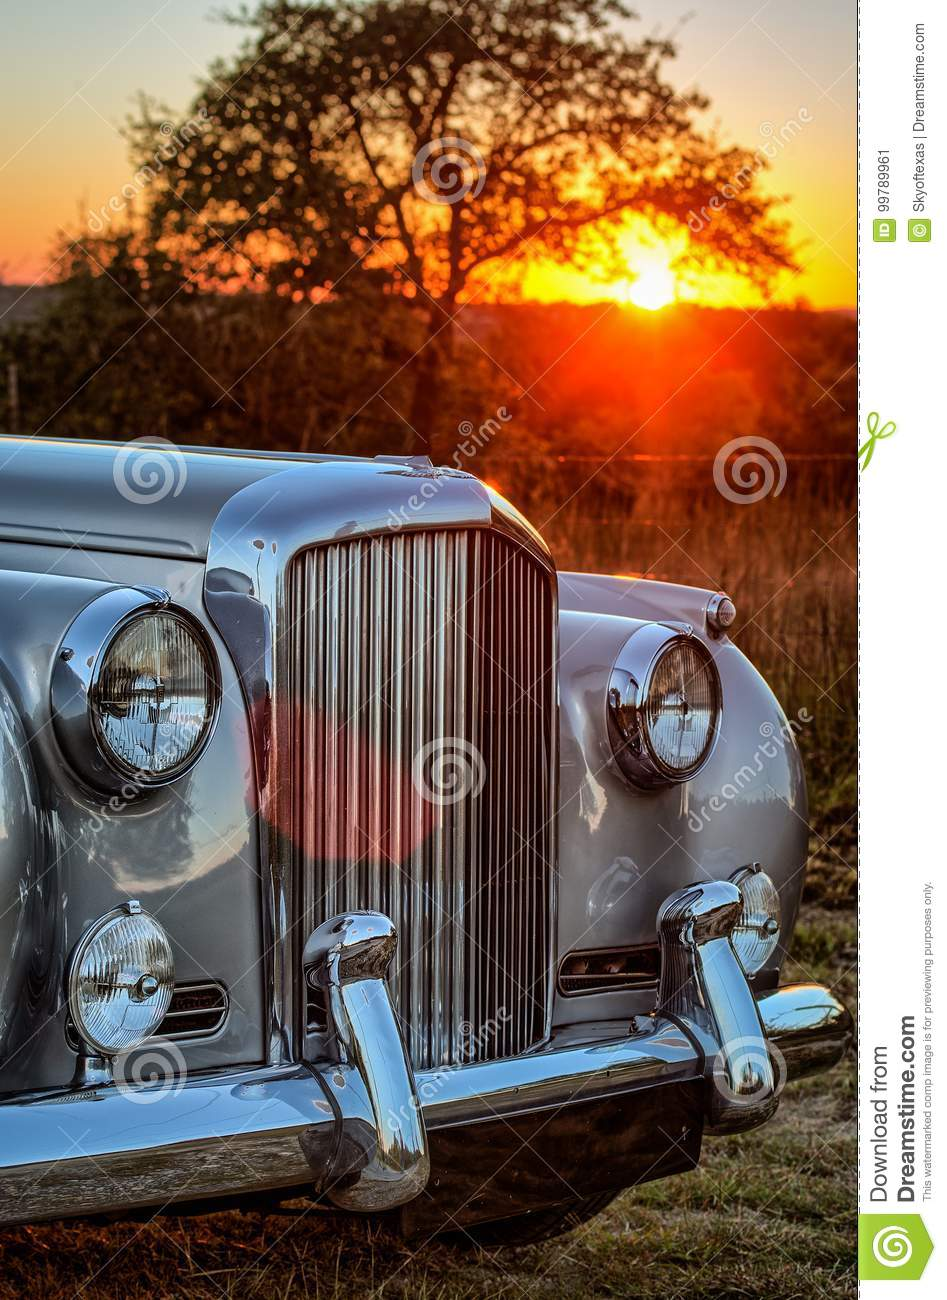 Verticle close up front view of vintage luxery limousine with sunset behind.